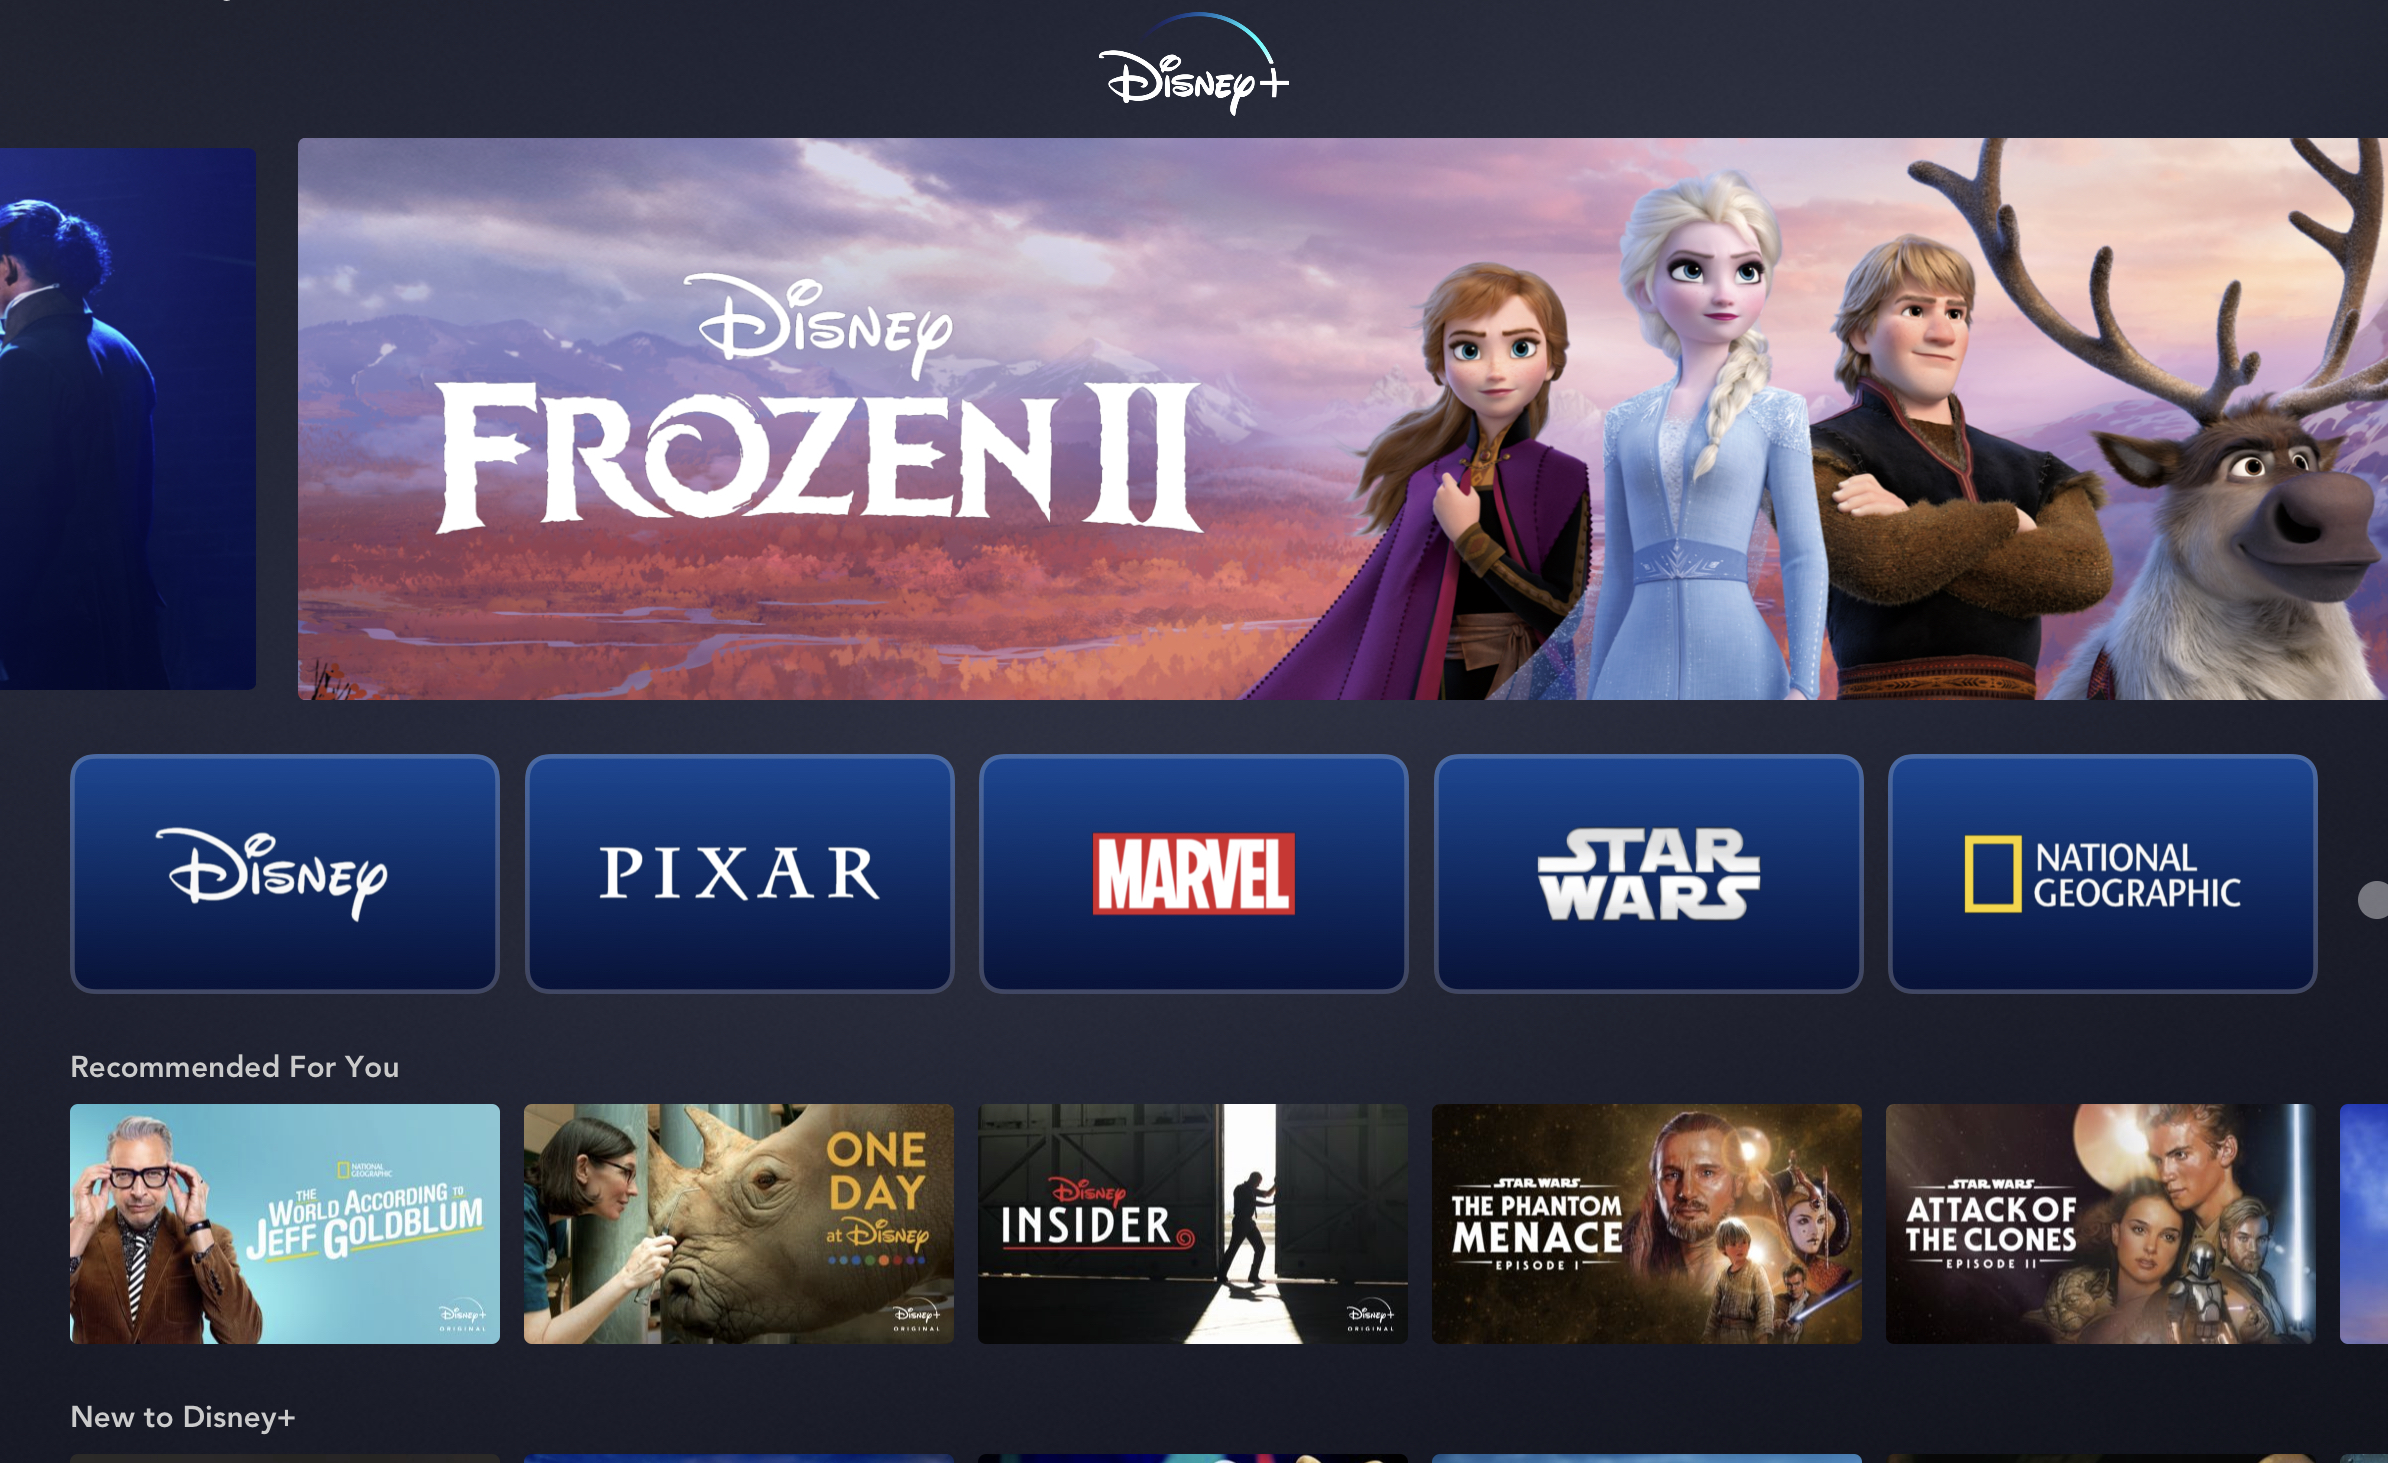 Disney+ successfully in Europe and has seen major releases such as Hamilton during Q3 2020